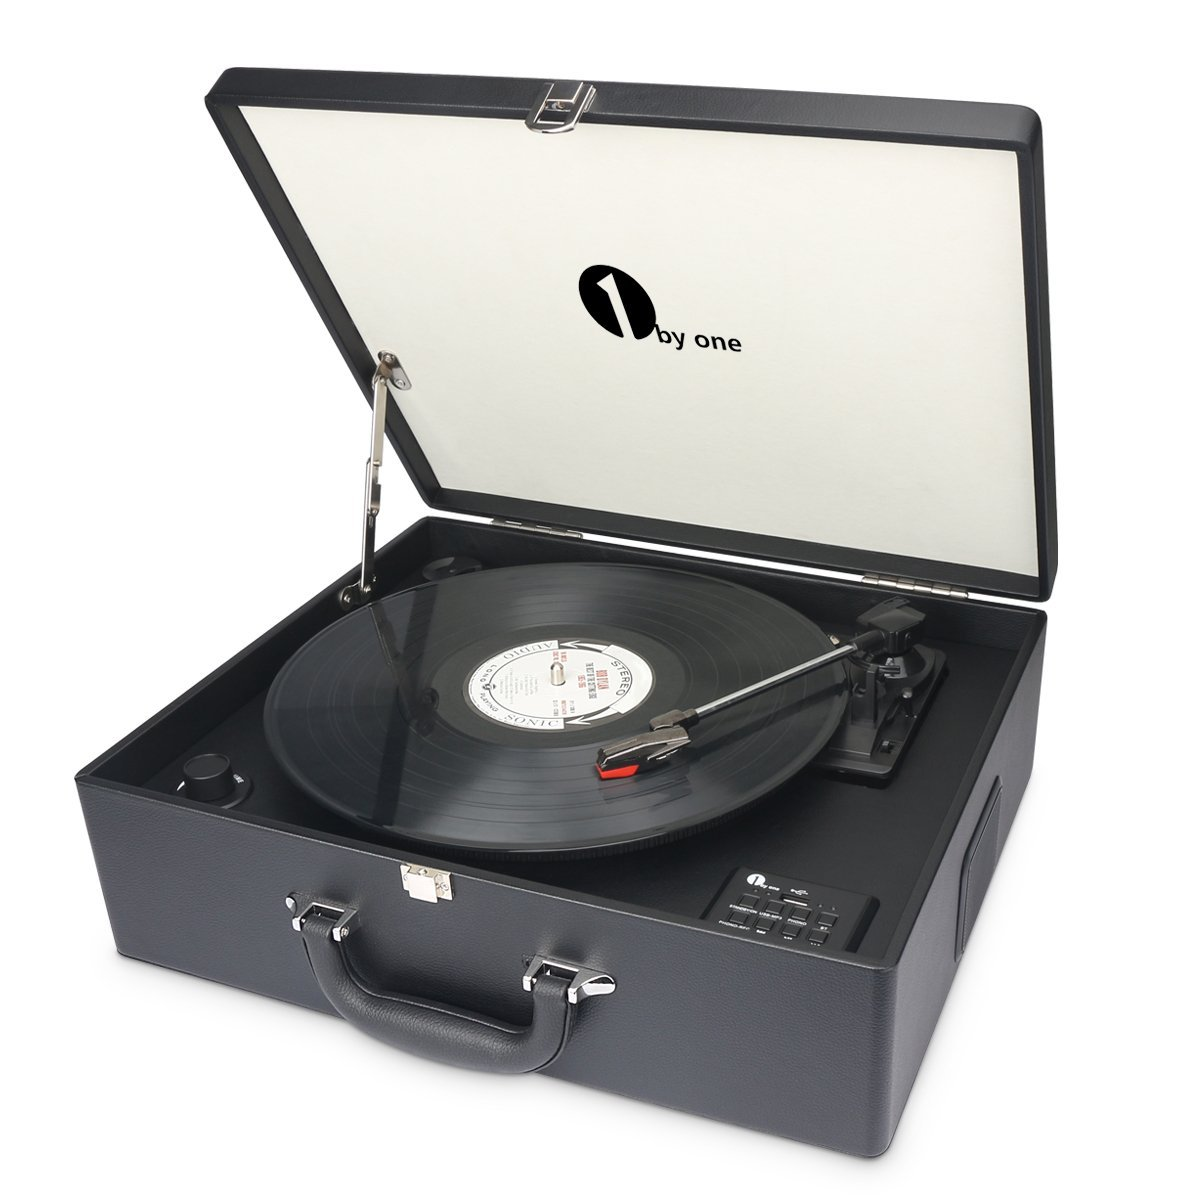 1byone Suit-case Style Turntable with Speaker Best Turntable under $200